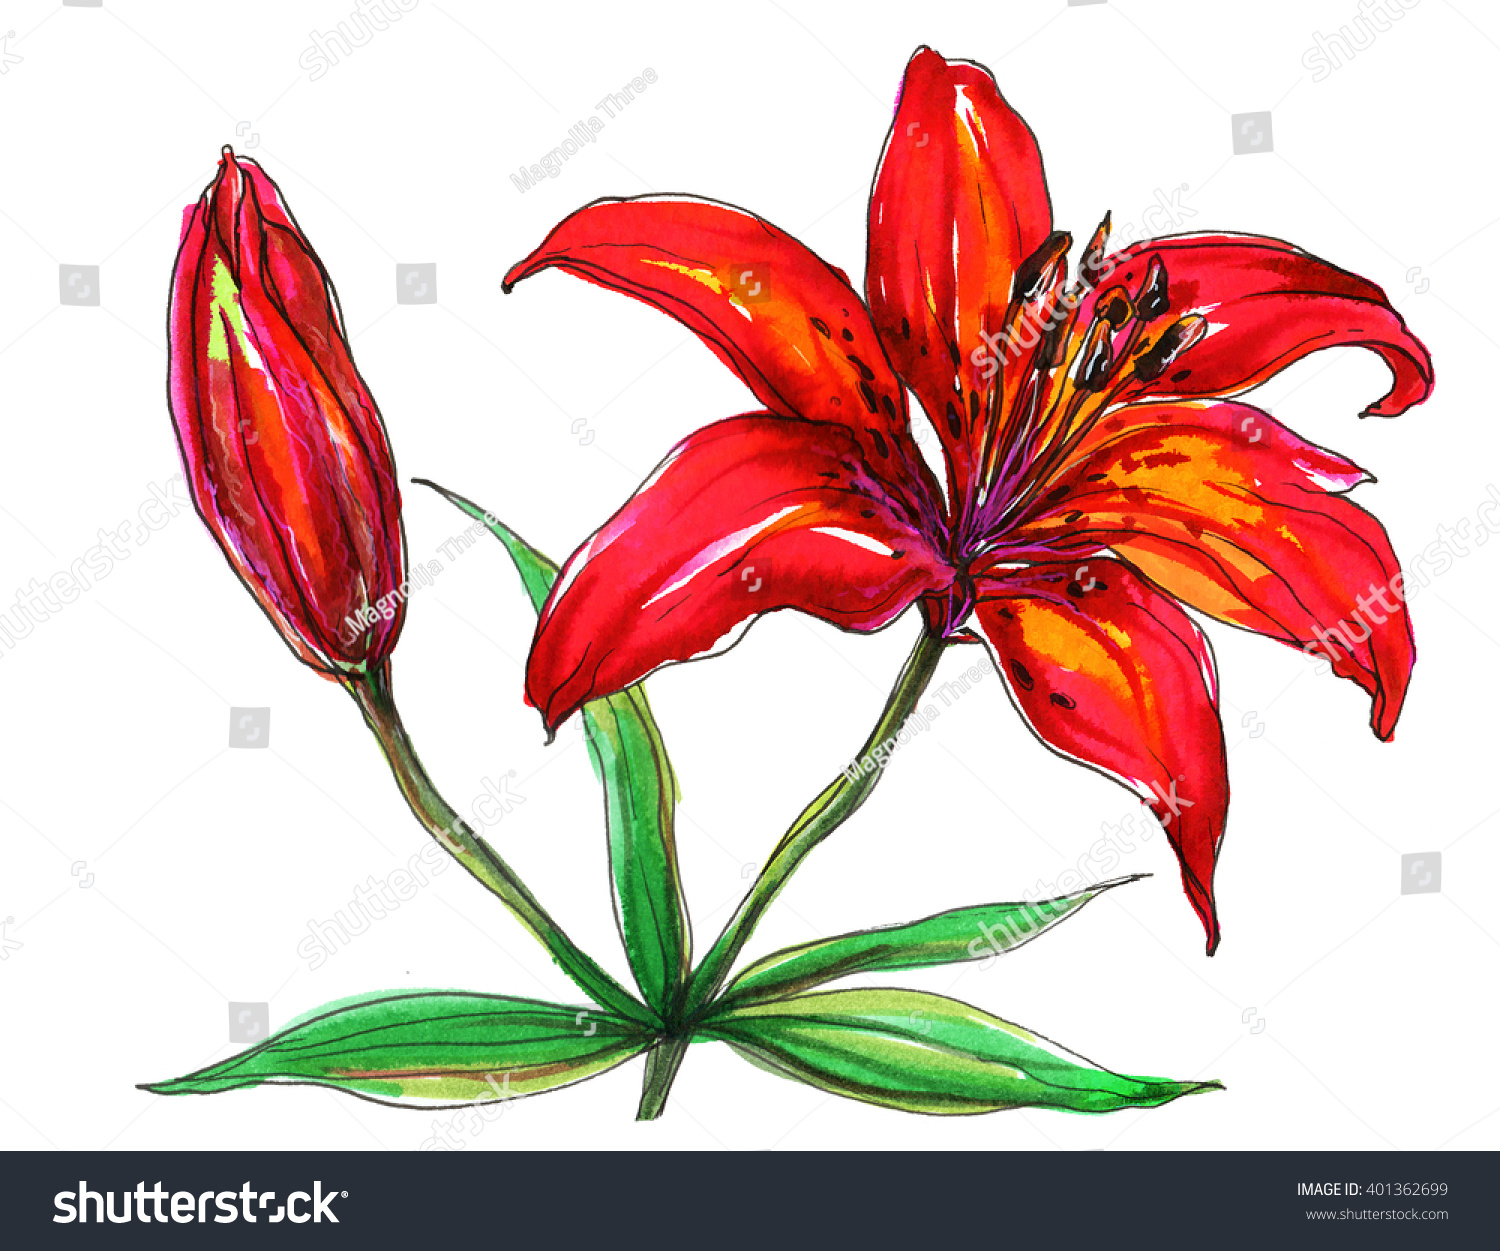 Red tiger lily flower blossom hand stock illustration 401362699 red tiger lily flower blossom hand drawn watercolor tropical flowers isolated on white background izmirmasajfo Images